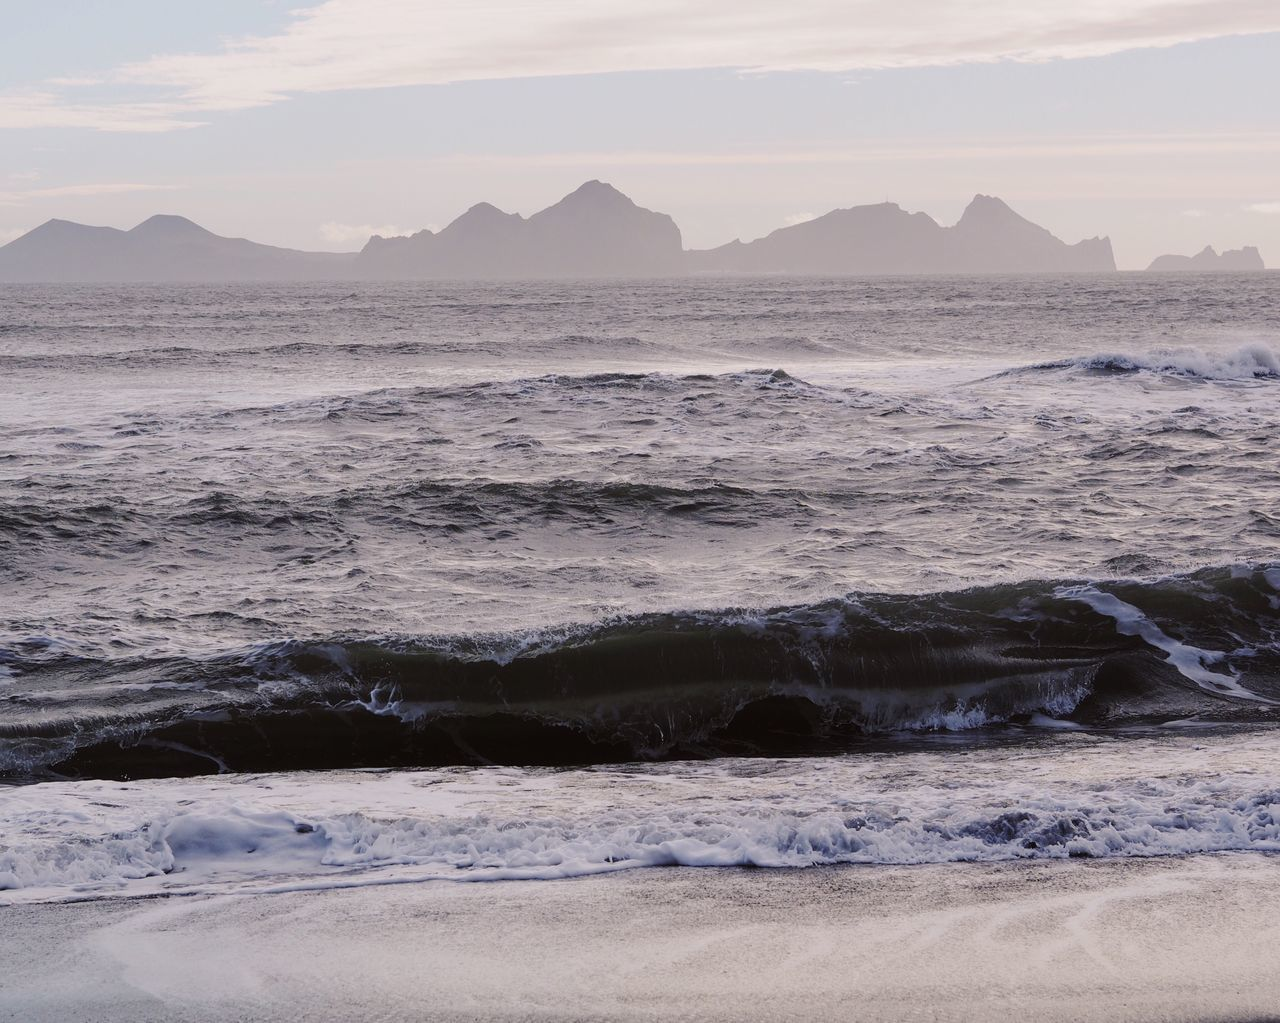 Sea Beauty In Nature Nature Water Beach Scenics Tranquil Scene Wave Mountain Shore Sand No People Tranquility Outdoors in Iceland Sunset